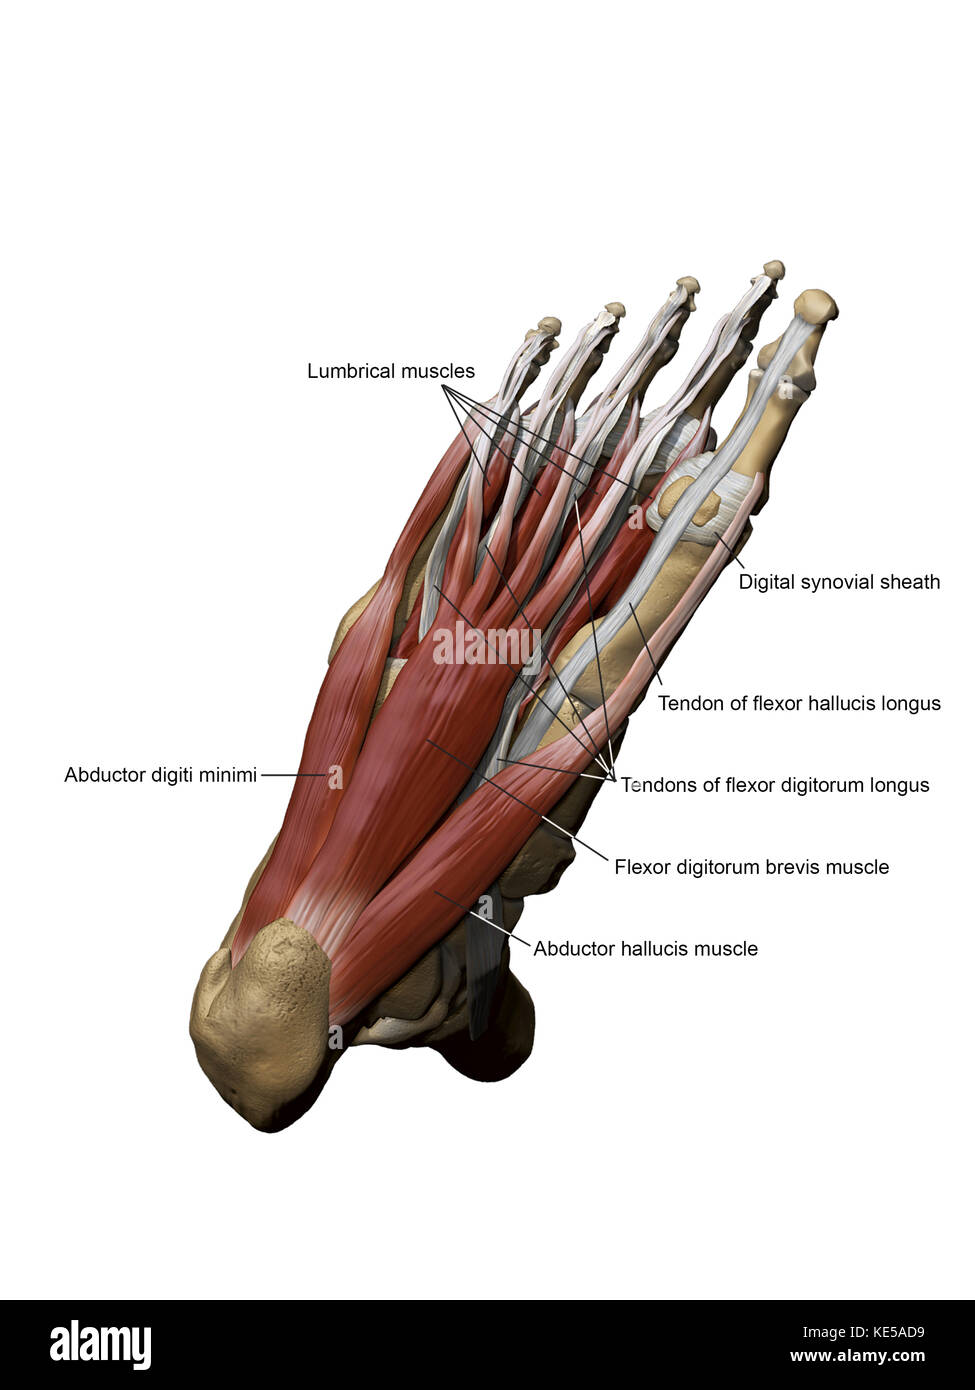 3D model of the foot depicting the plantar superficial muscles and ...